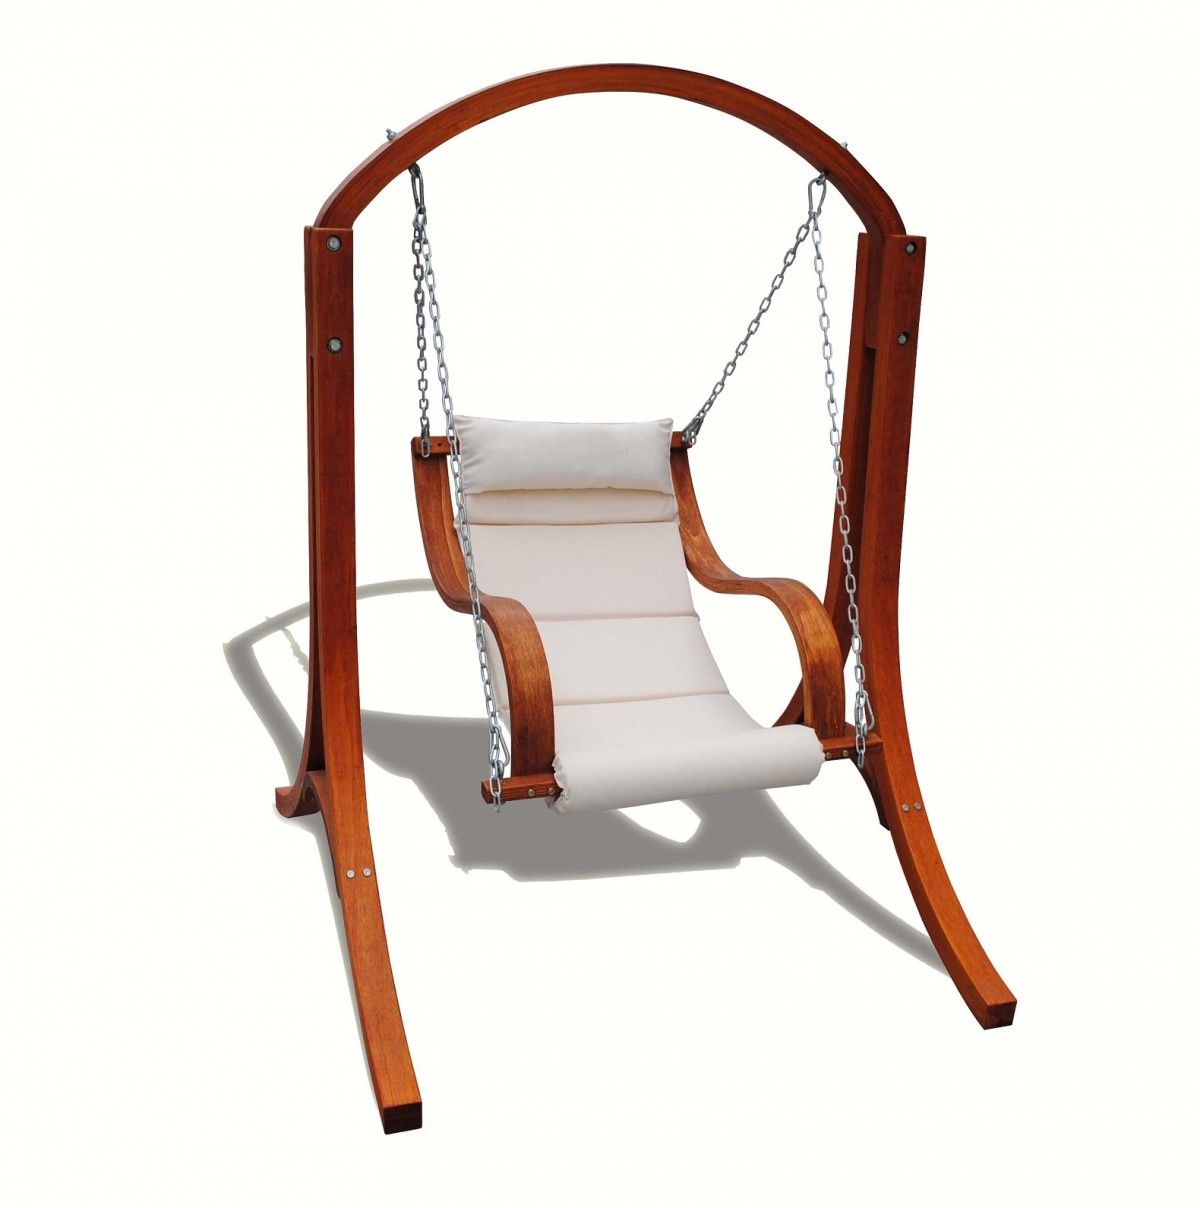 Aspire Hanging Swing Chair Timber Outdoor Furniture Hanging Swing Chair Timber Outdoor Furniture Swinging Chair